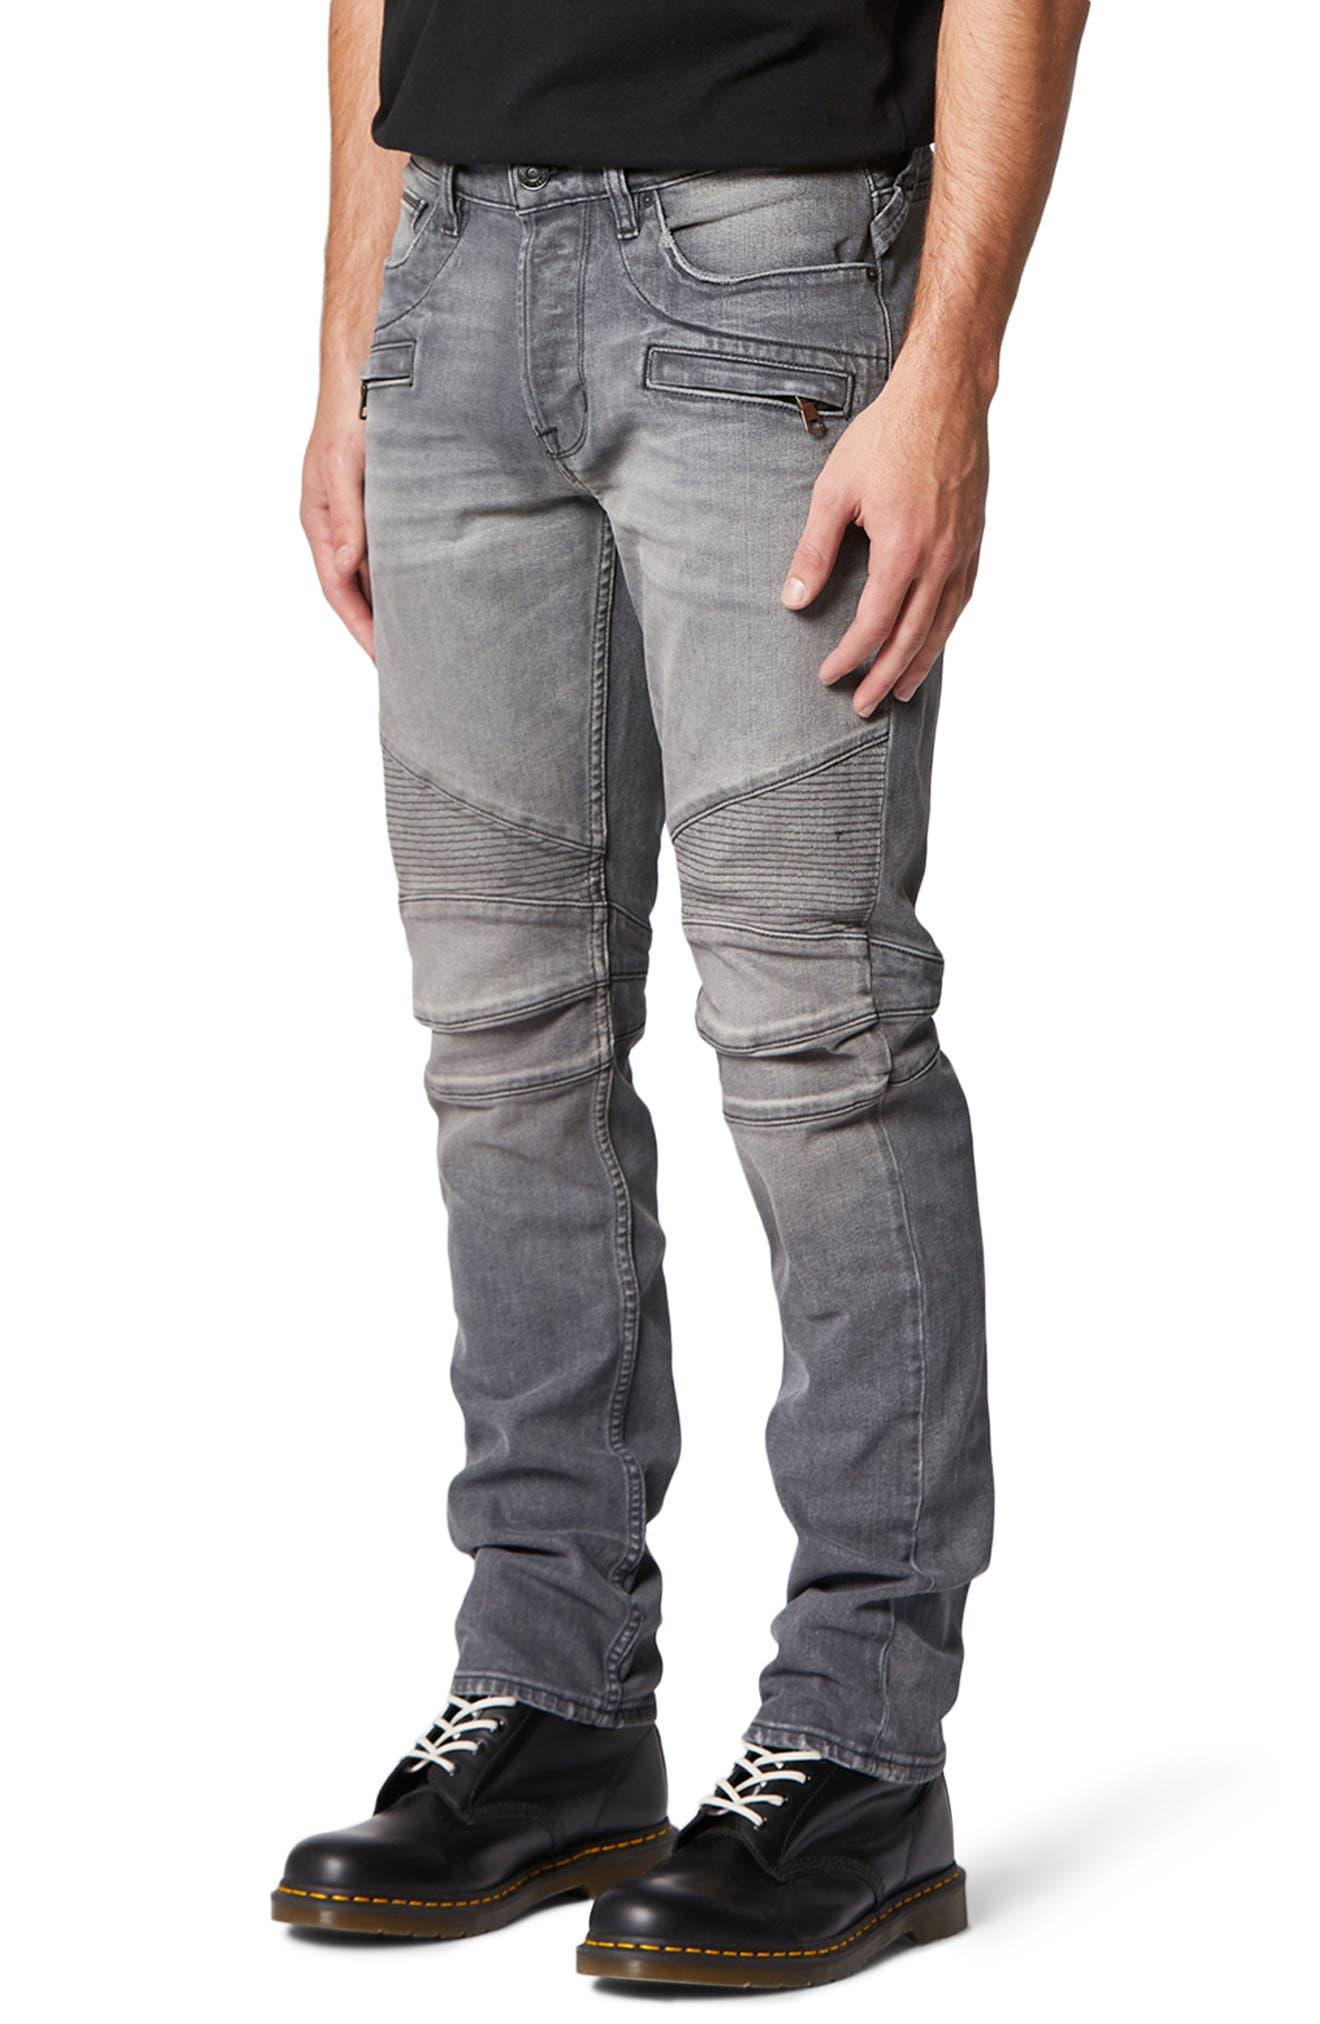 Nicks and heavy sanding rev up the moto attitude of panel-cut biker jeans sporting tough ribbing right above the knees. Style Name: Hudson Jeans The Blinder Biker Skinny Fit Jeans (Trade). Style Number: 5988641. Available in stores.